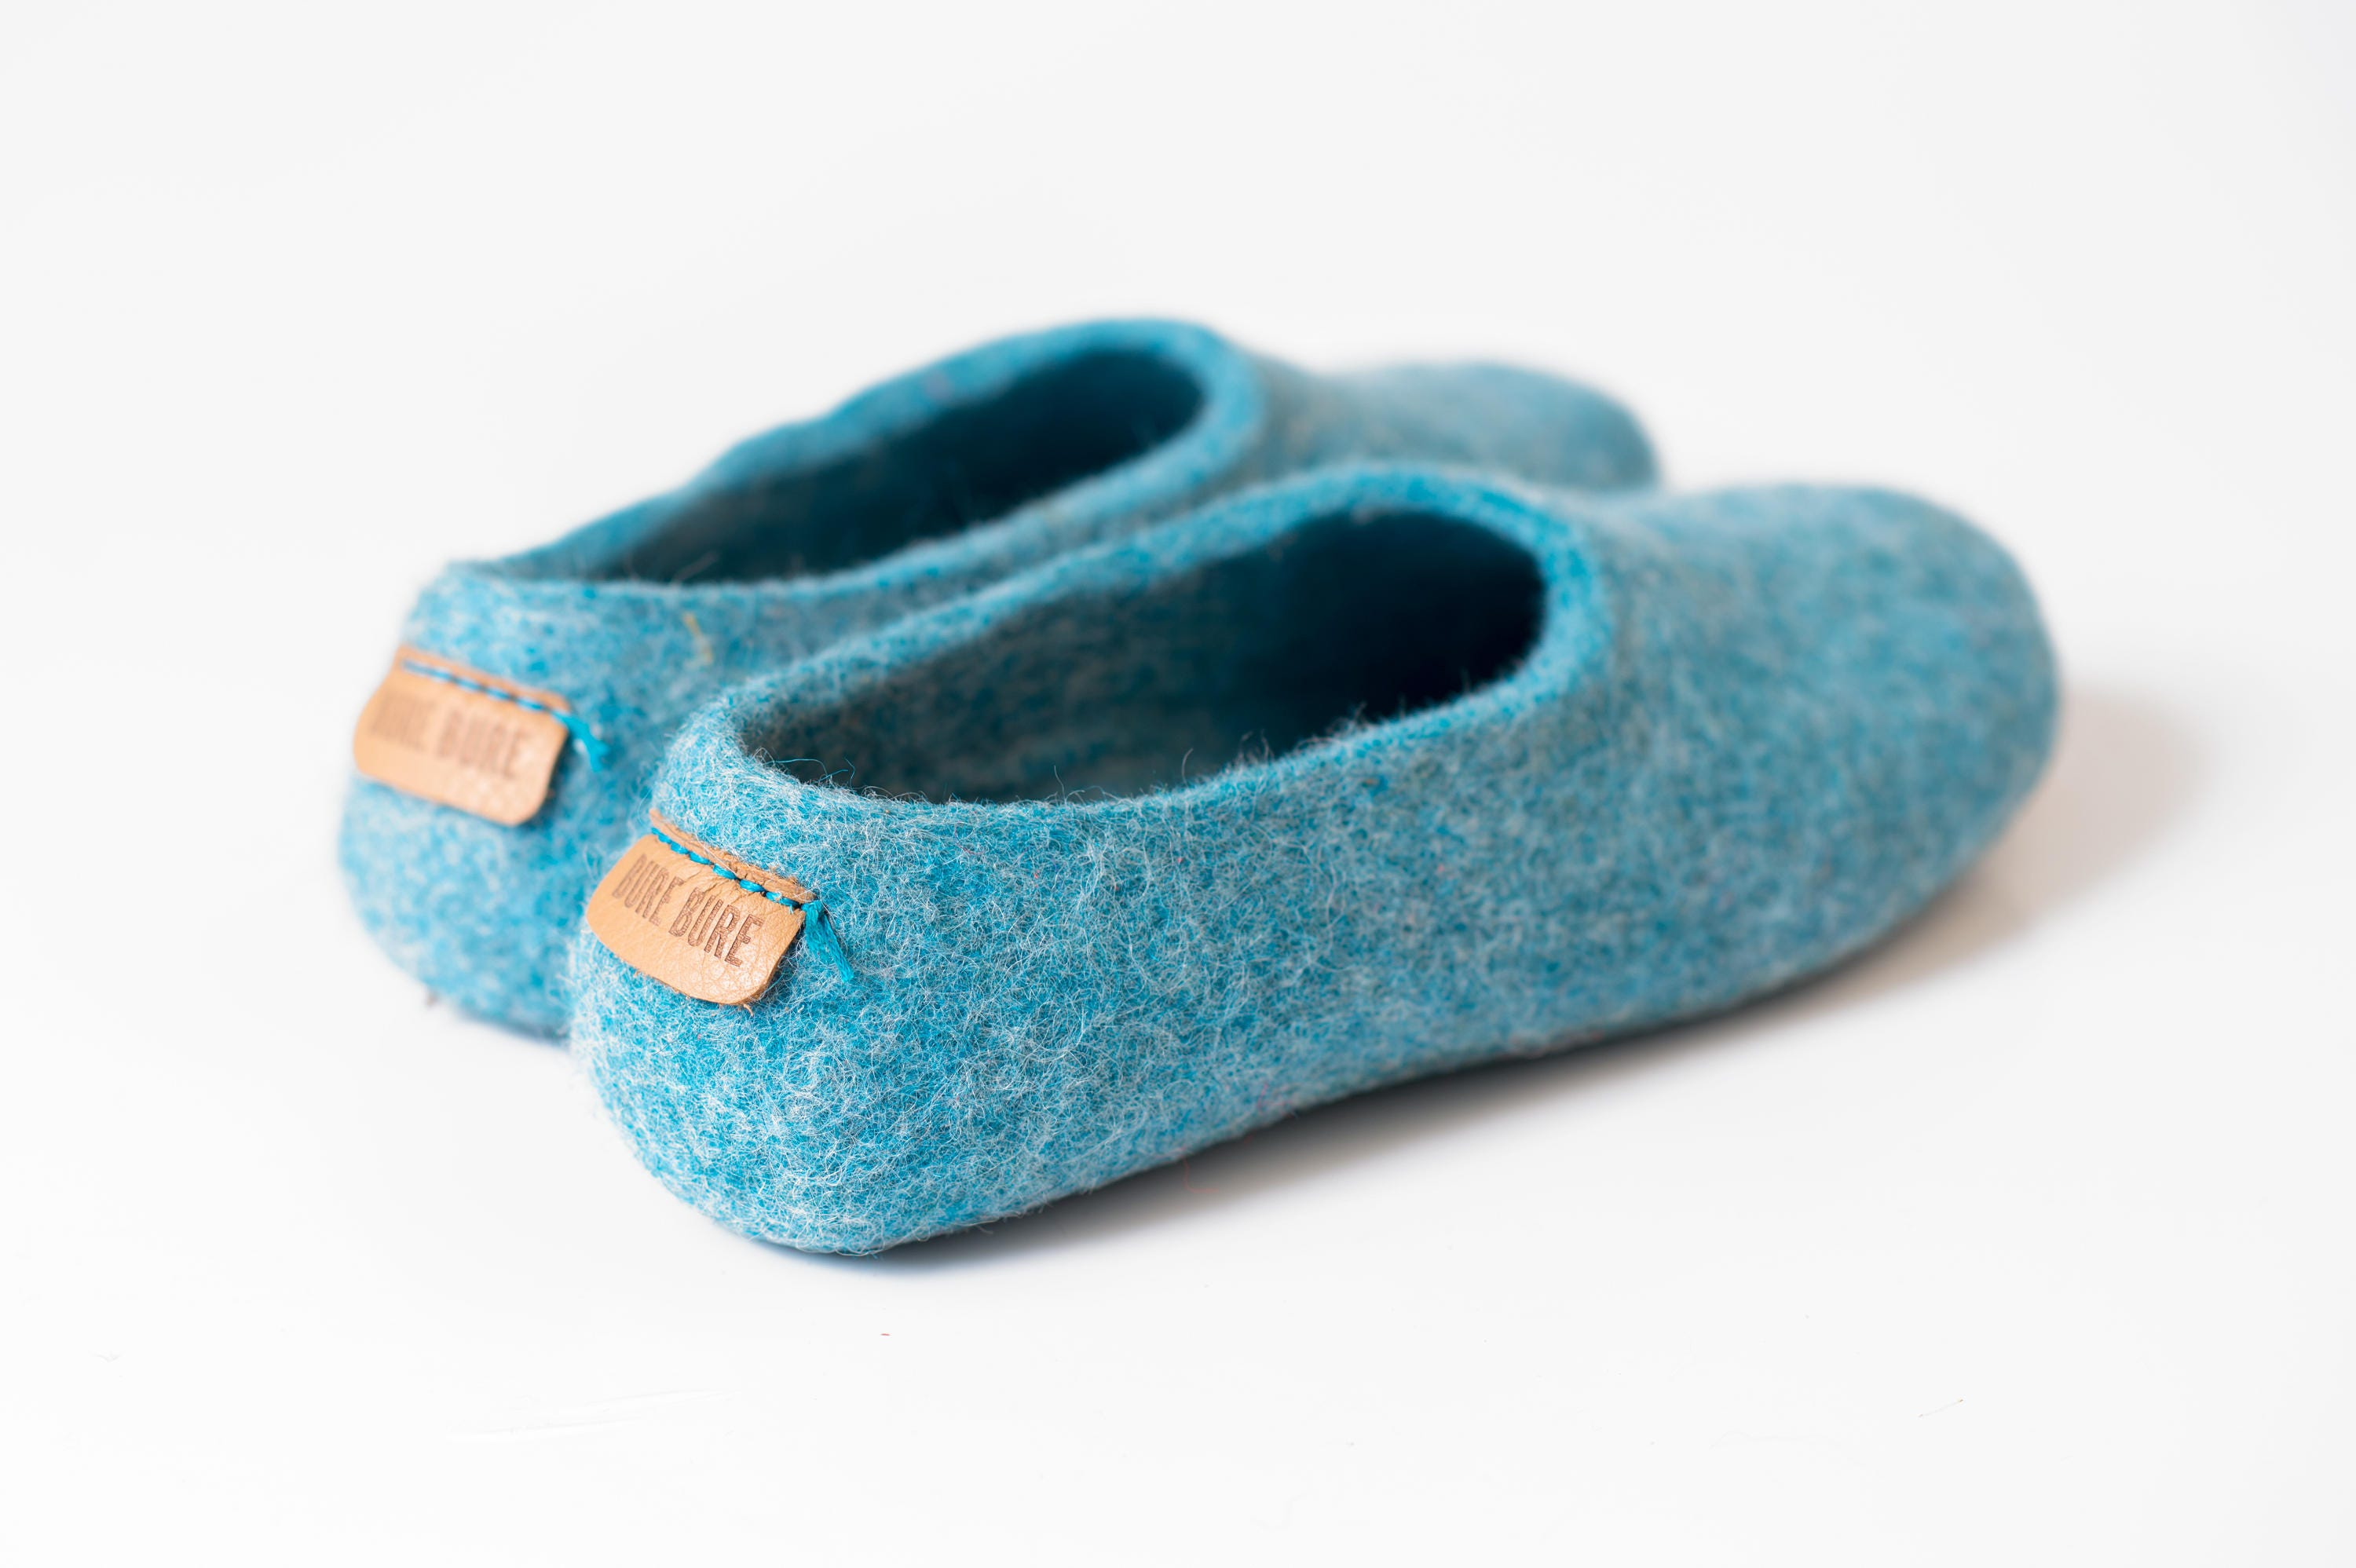 ed2b35d64fb75 Pale Turquoise natural wool felt slippers for women, women Home ...